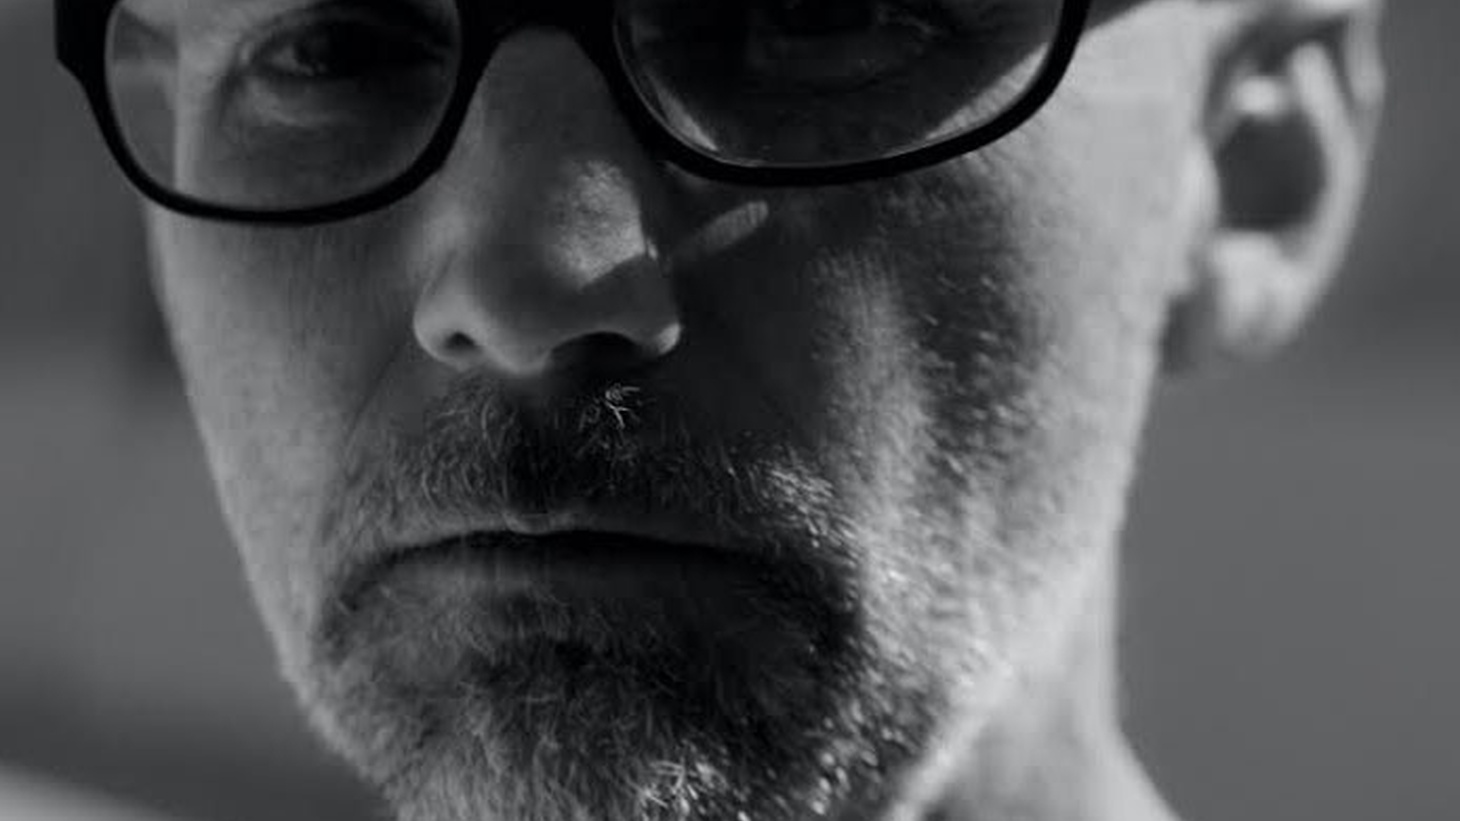 Moby returns to his orchestral, soul, trip-hop, and gospel roots on his forthcoming album.